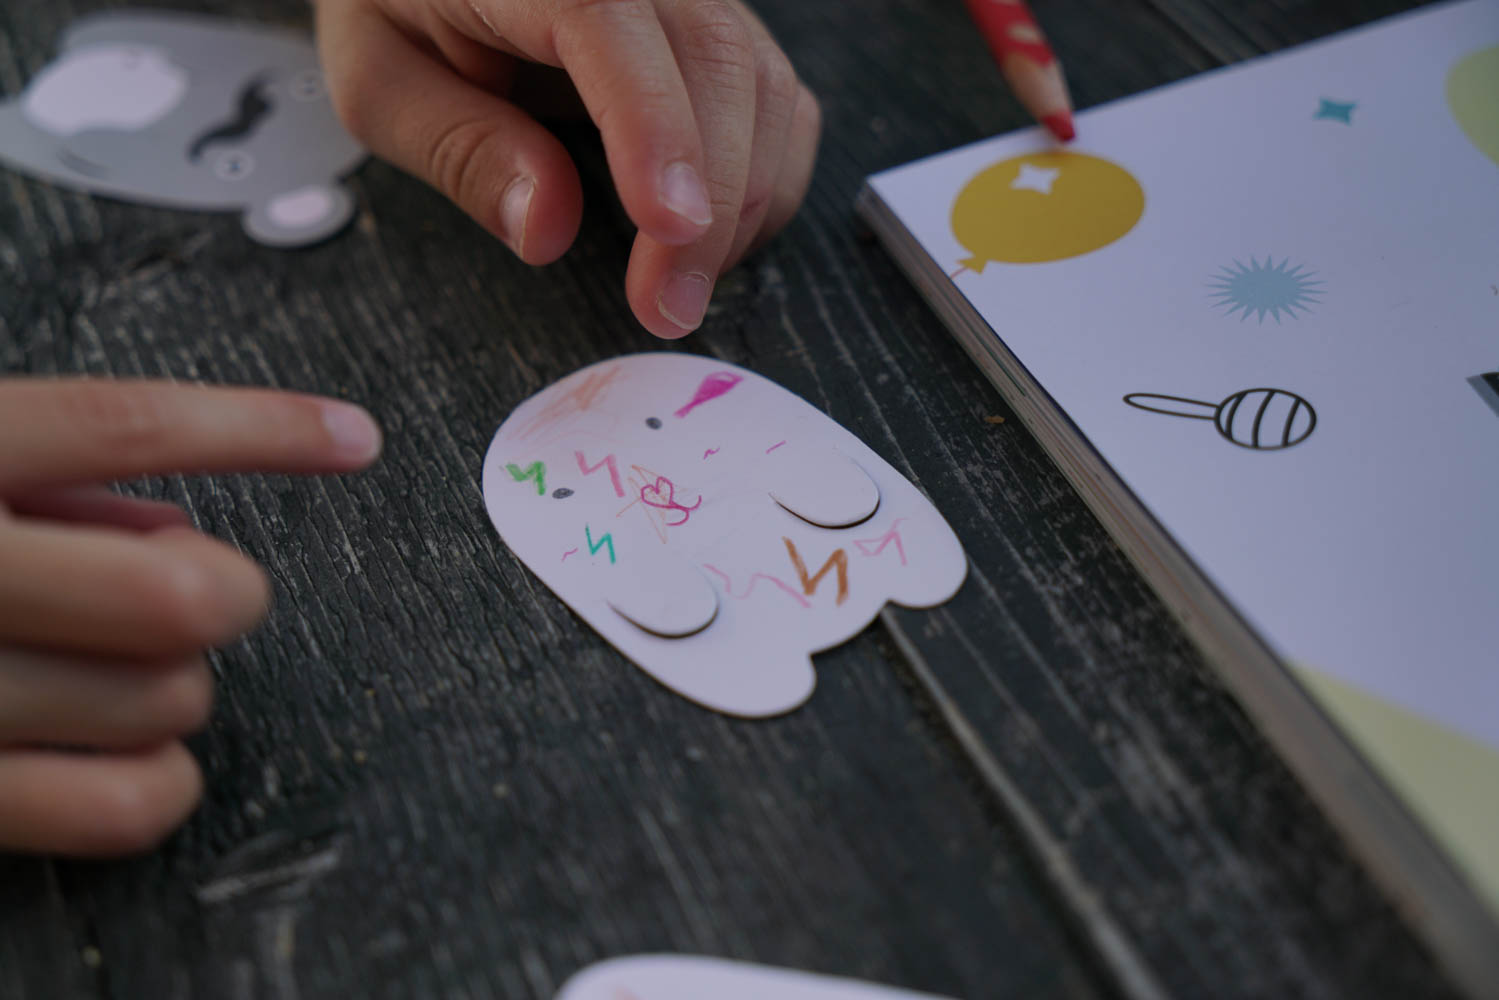 a day in rice ton activity book